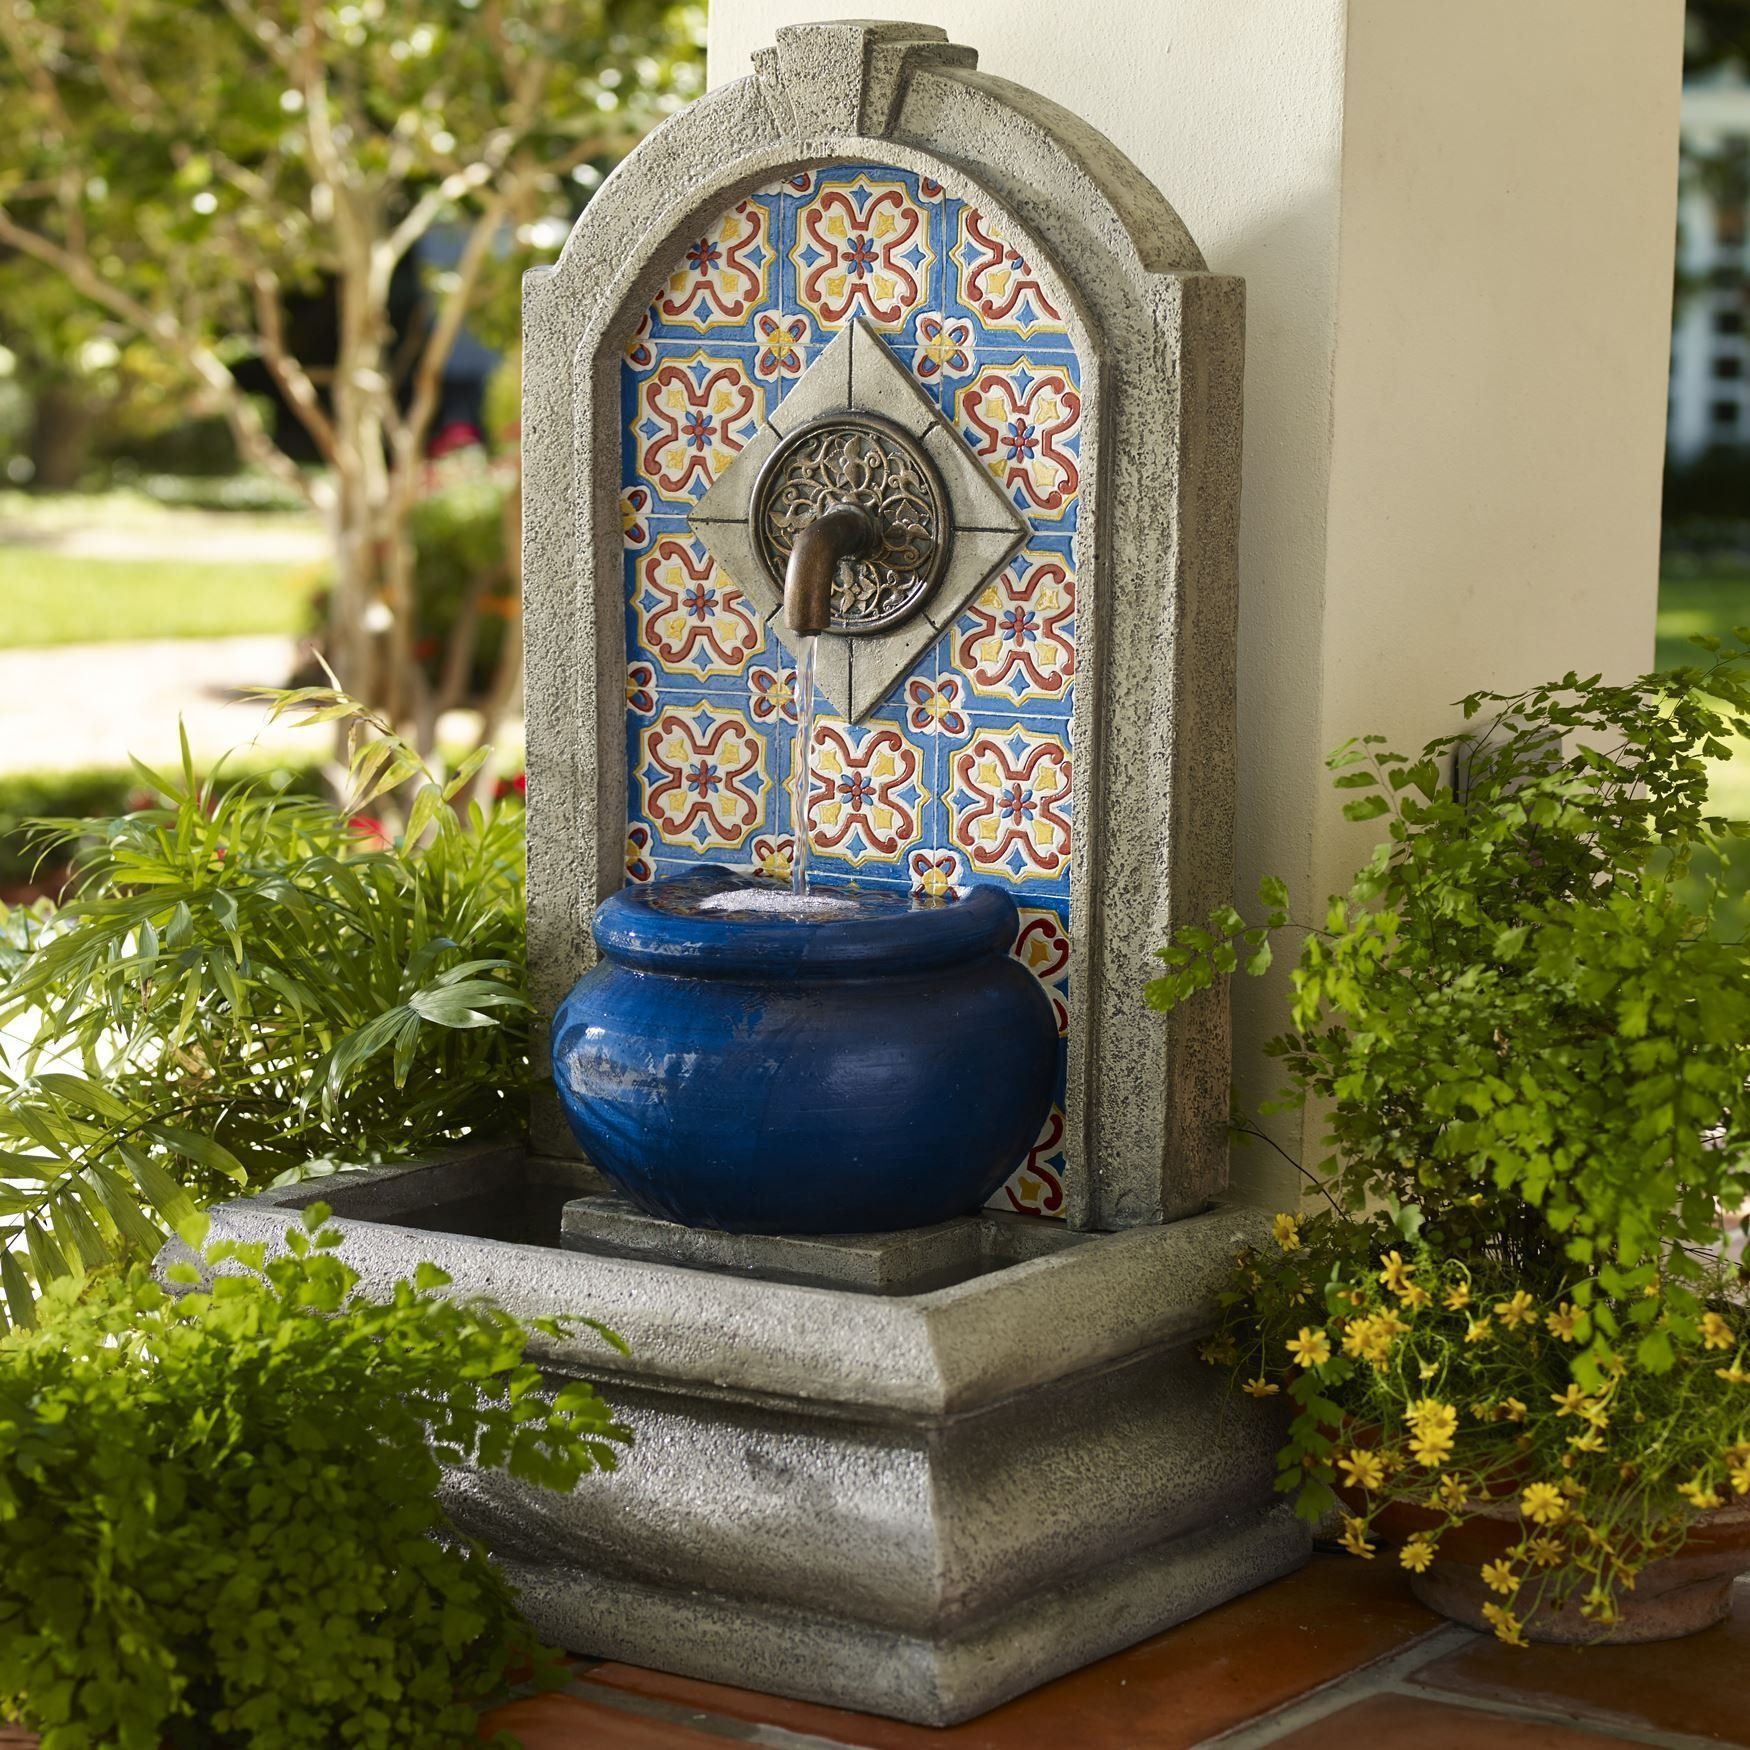 44 Mediterranean Garden Ideas Spanish Colonial Tile Https Silahsilah Com Garden E Water Fountains Outdoor Outdoor Wall Fountains Water Features In The Garden